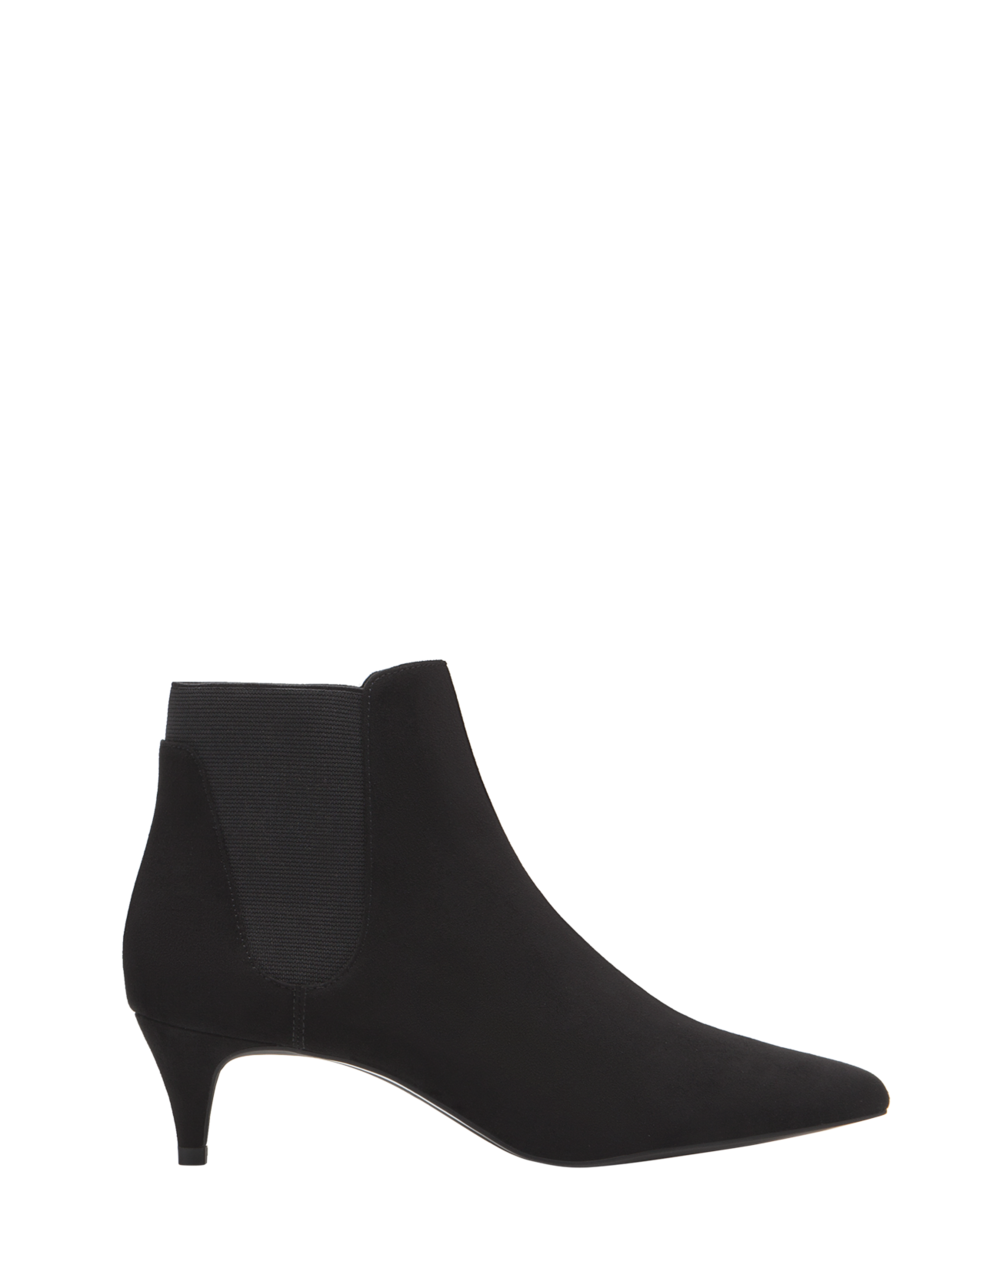 Stradivarius_fw15_shoes (6).png